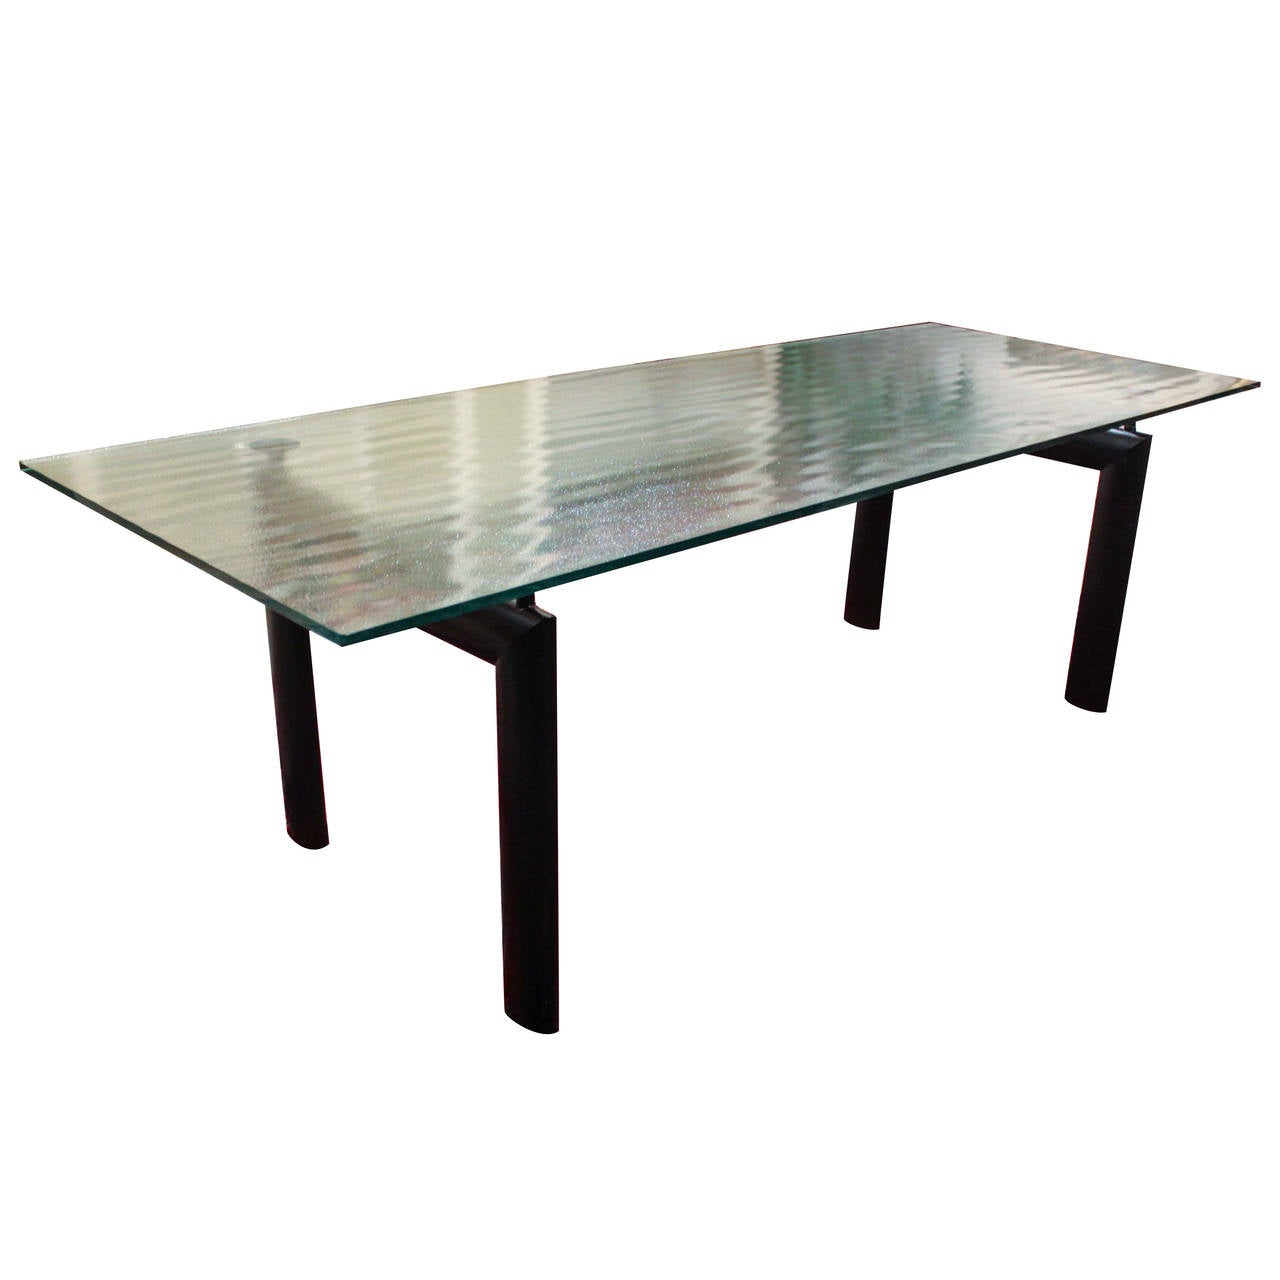 LC6 Table By Le Corbusier, Pierre Jeanneret, Charlotte Perriand For Cassina  For Sale